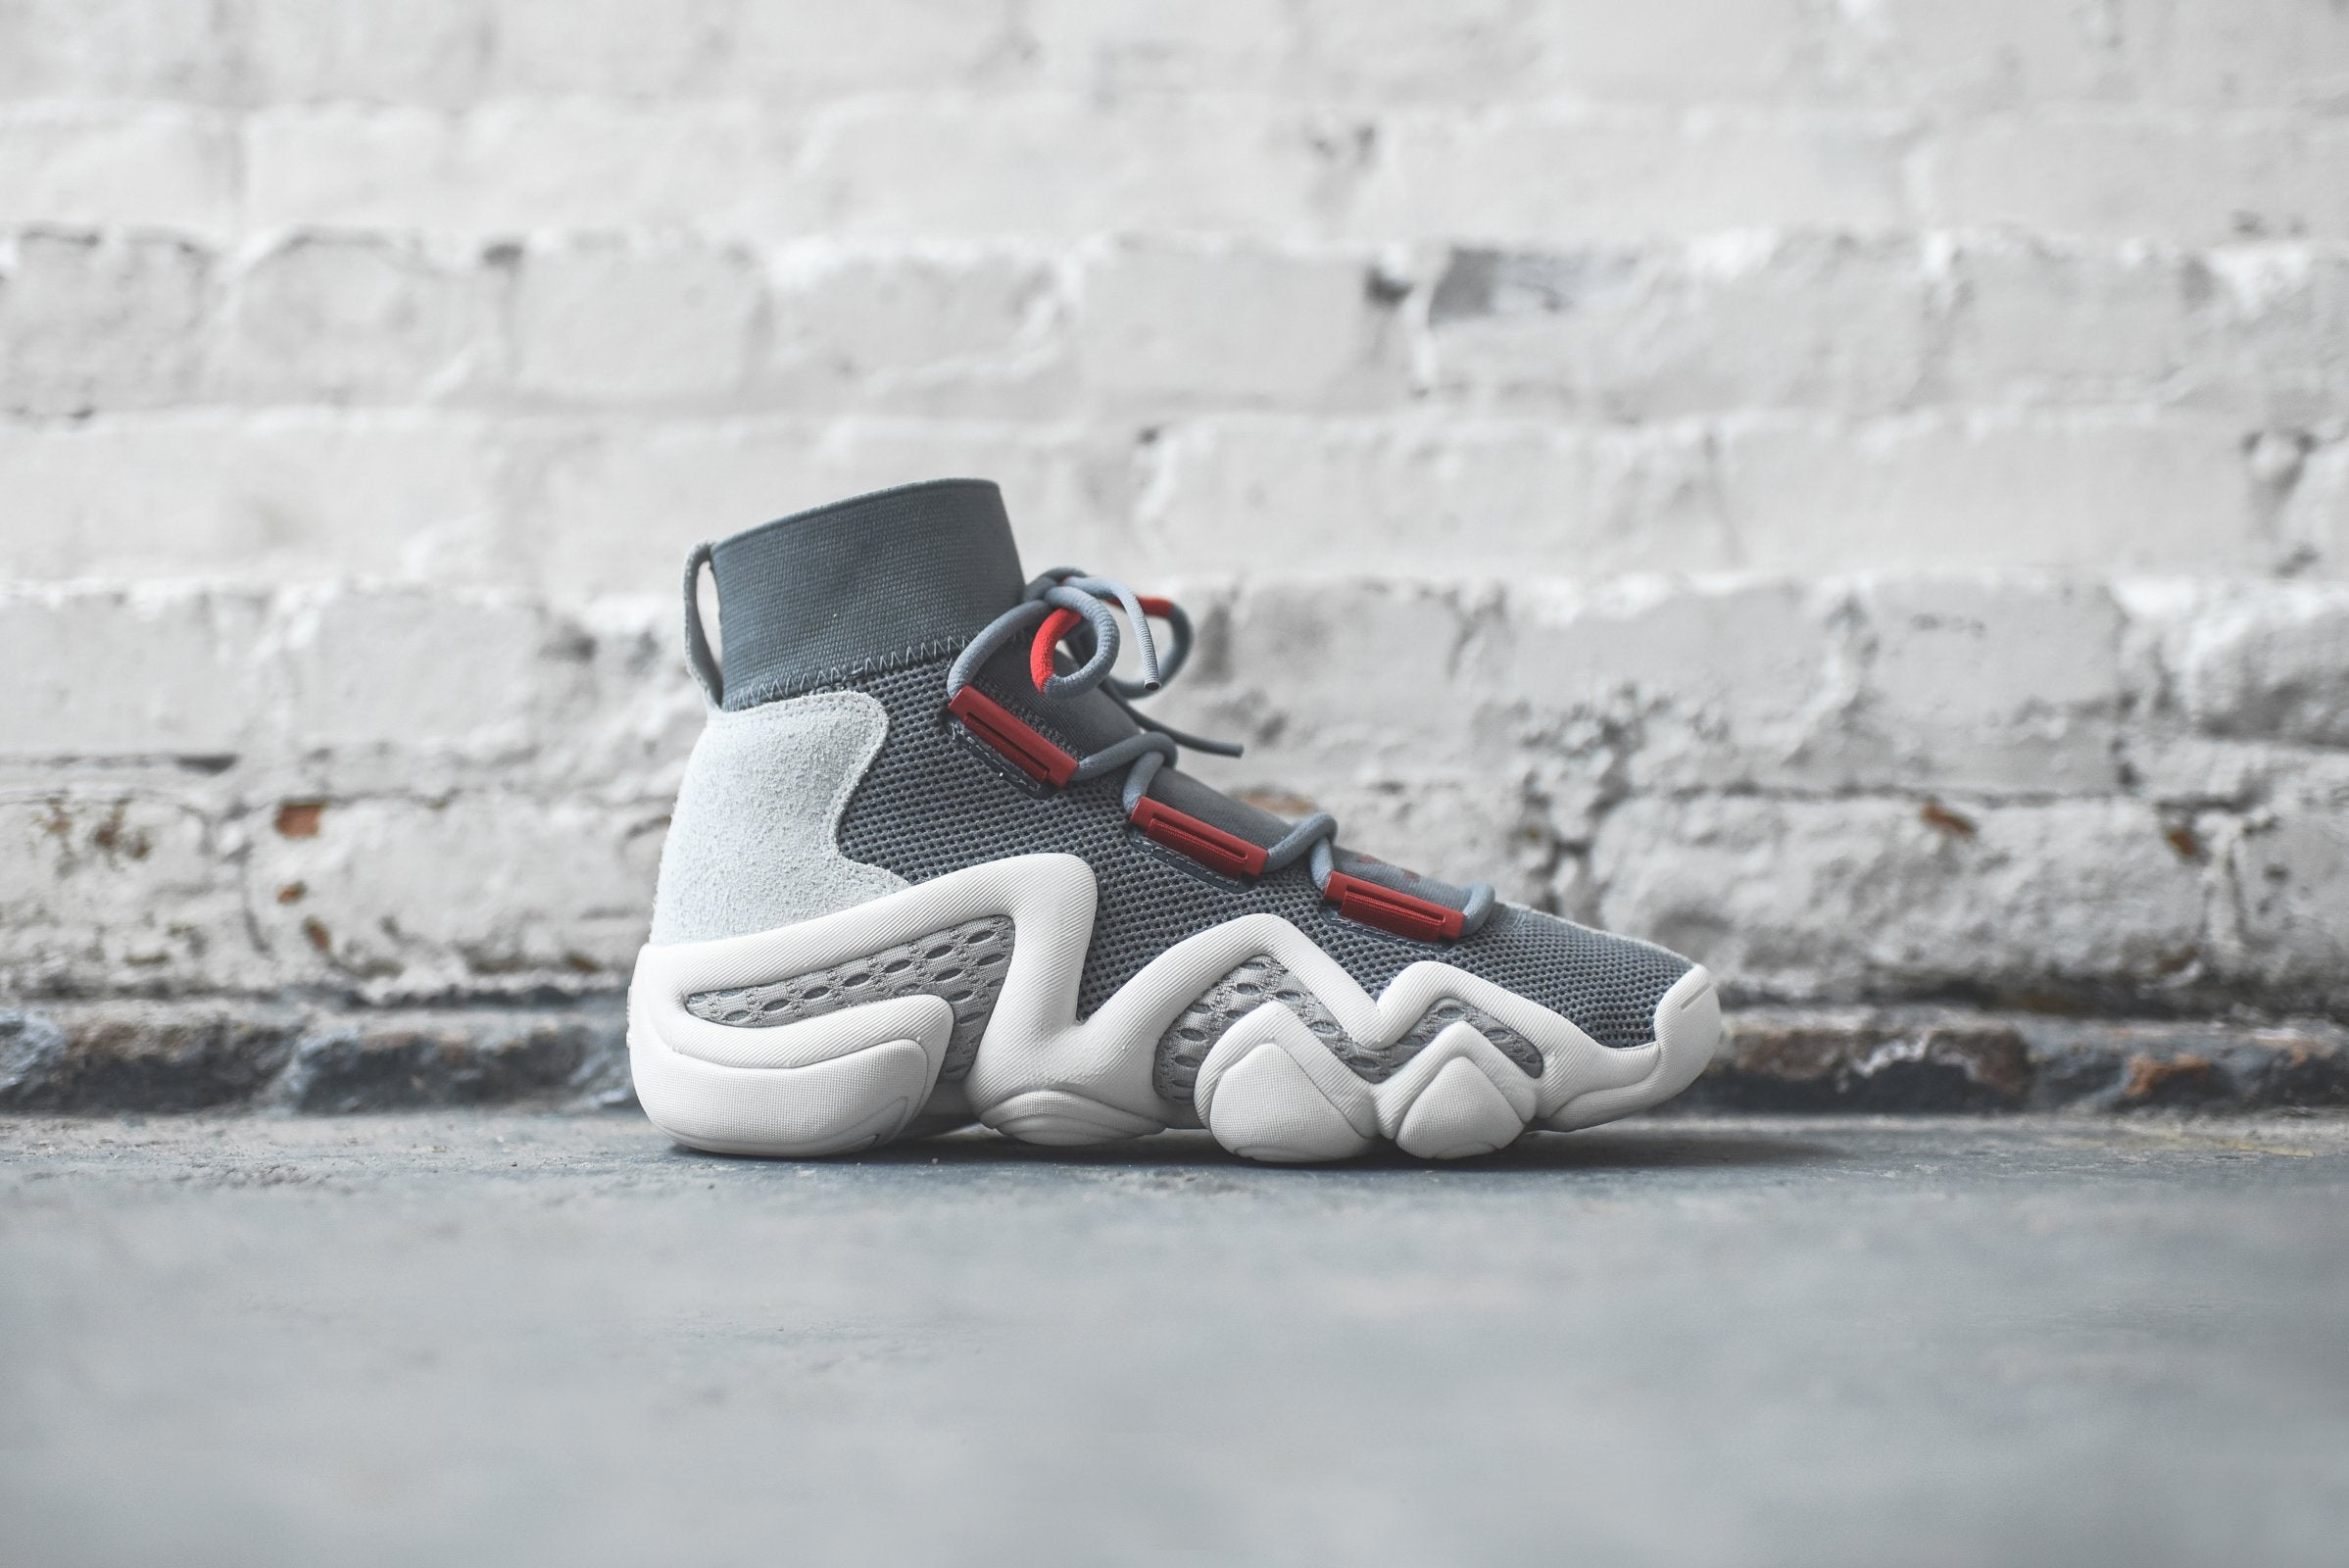 9b82f7823b81 ... website for discount f13dc 1525e adidas Consortium Crazy 8 ADV - Grey  Red Sesame ...